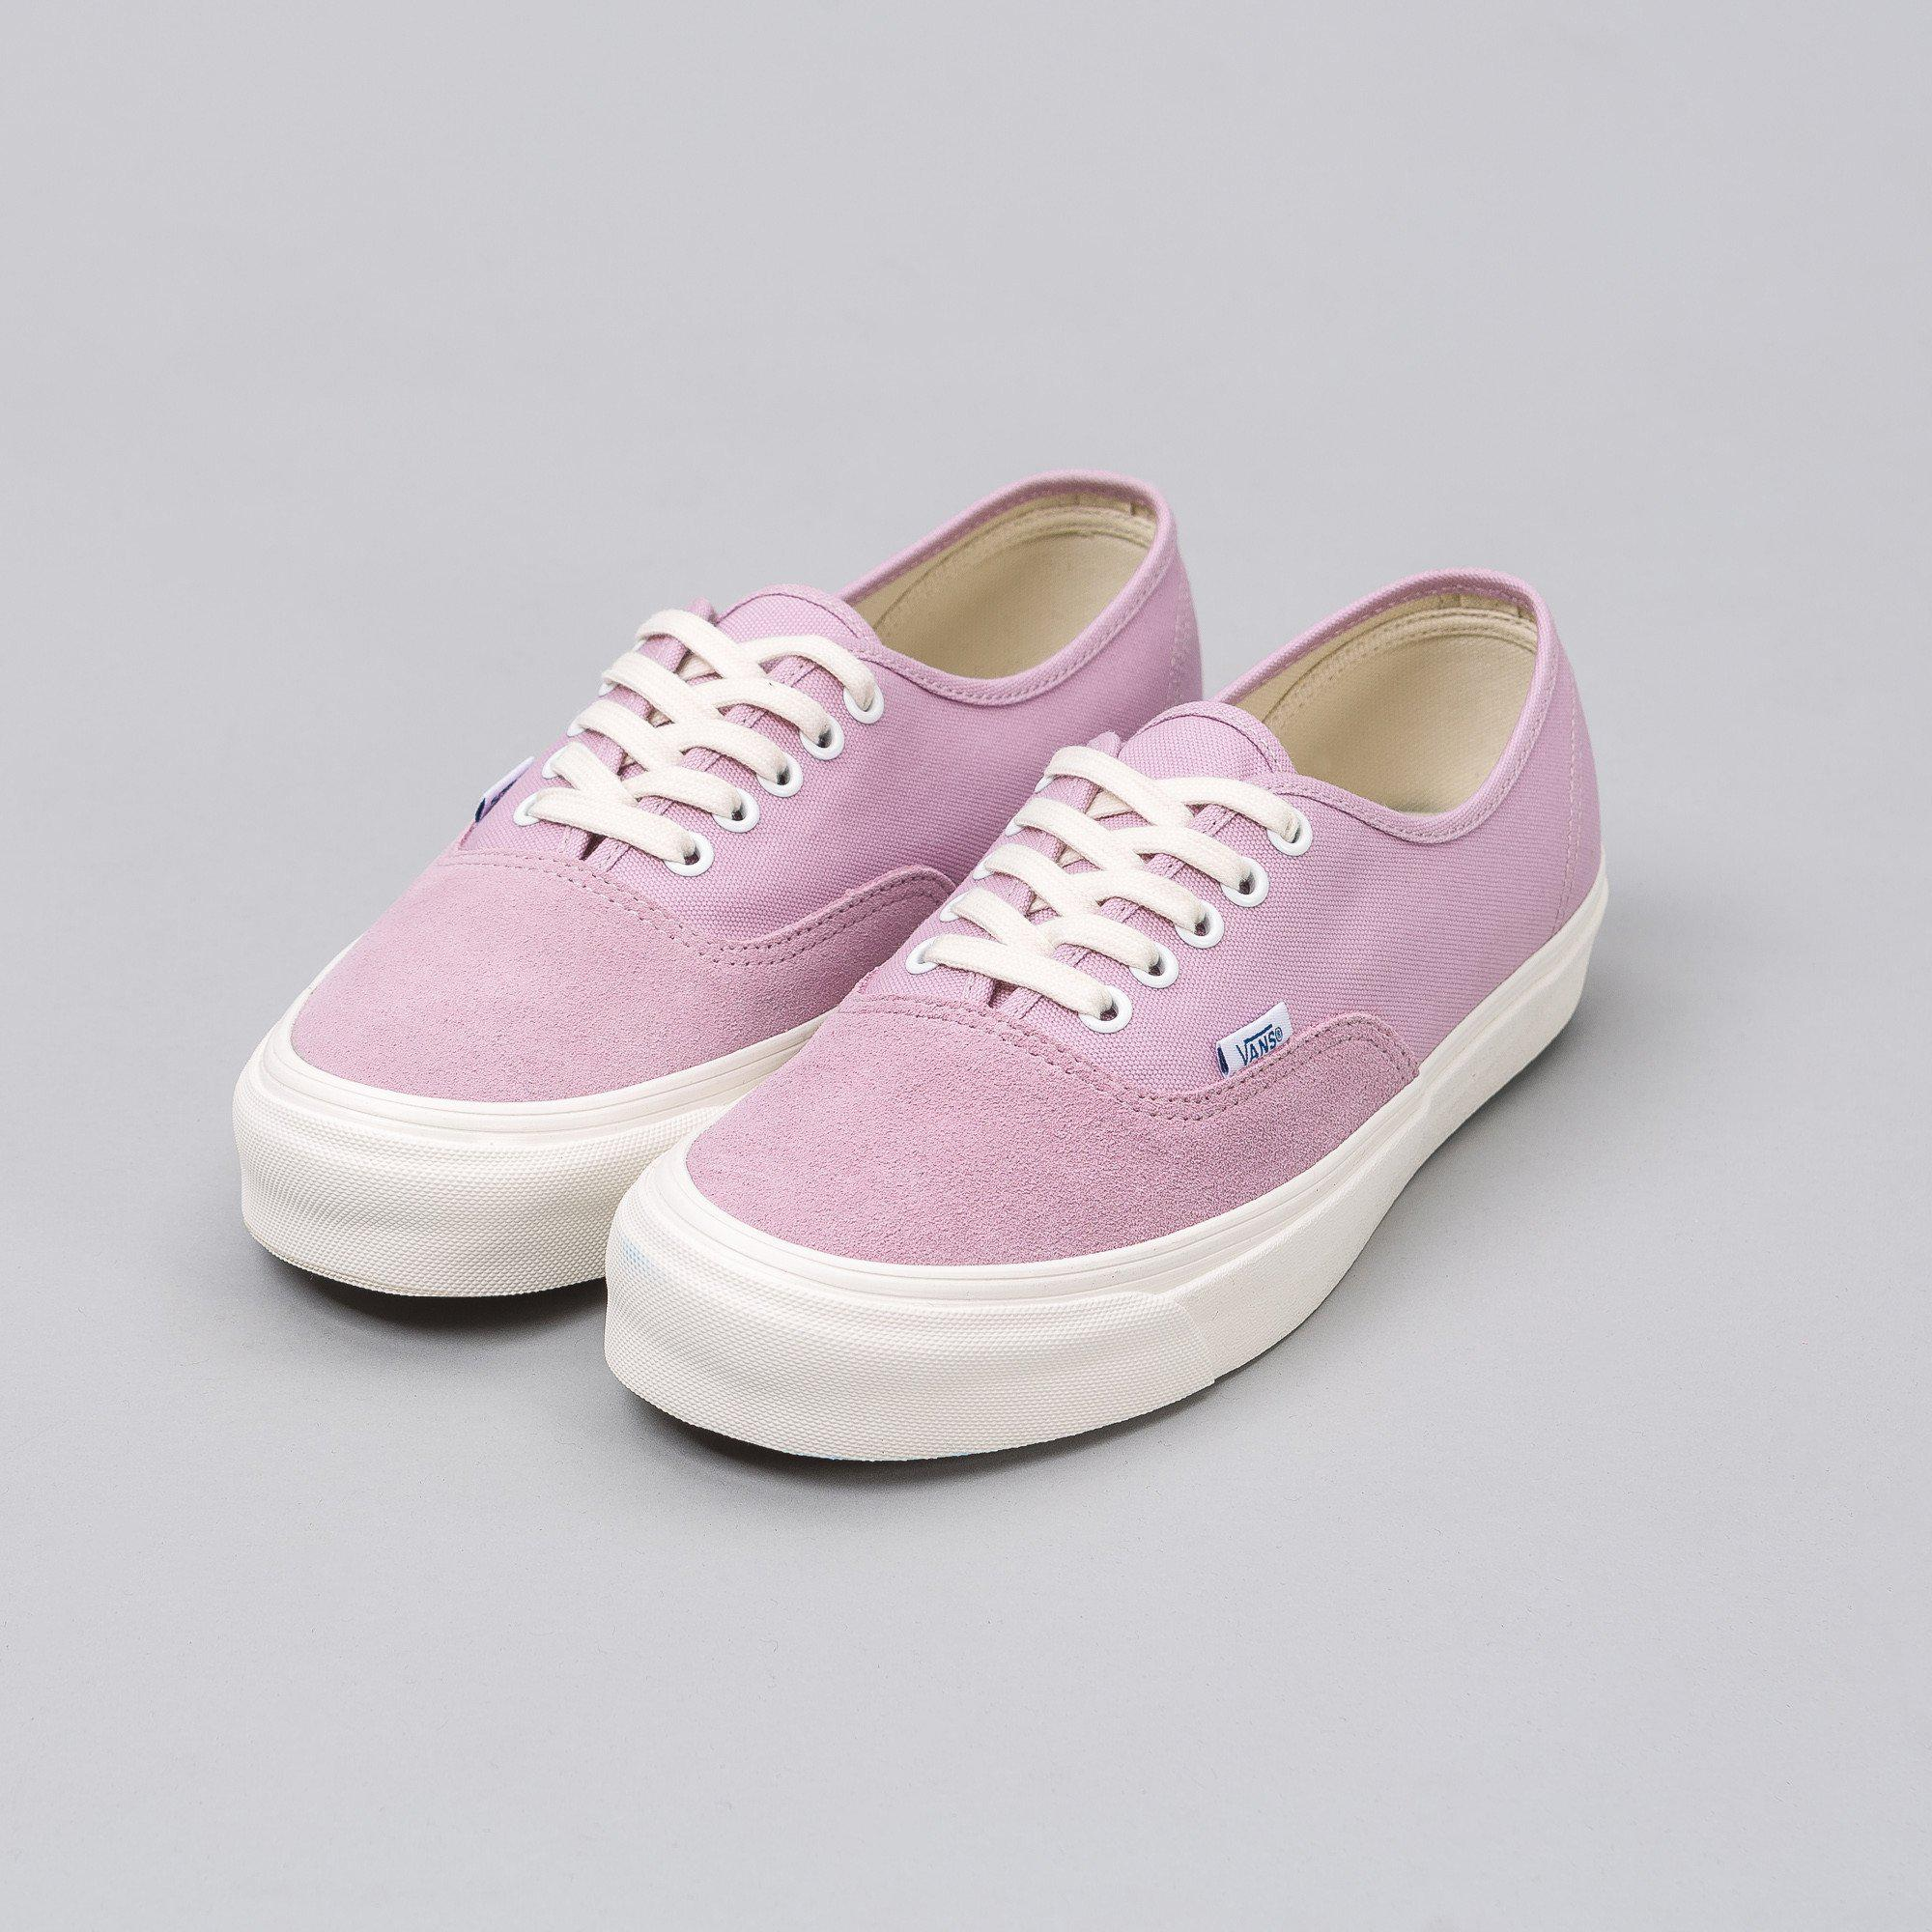 09a9aa5191 Lyst - Vans Og Authentic Lx In Lavender in Pink for Men